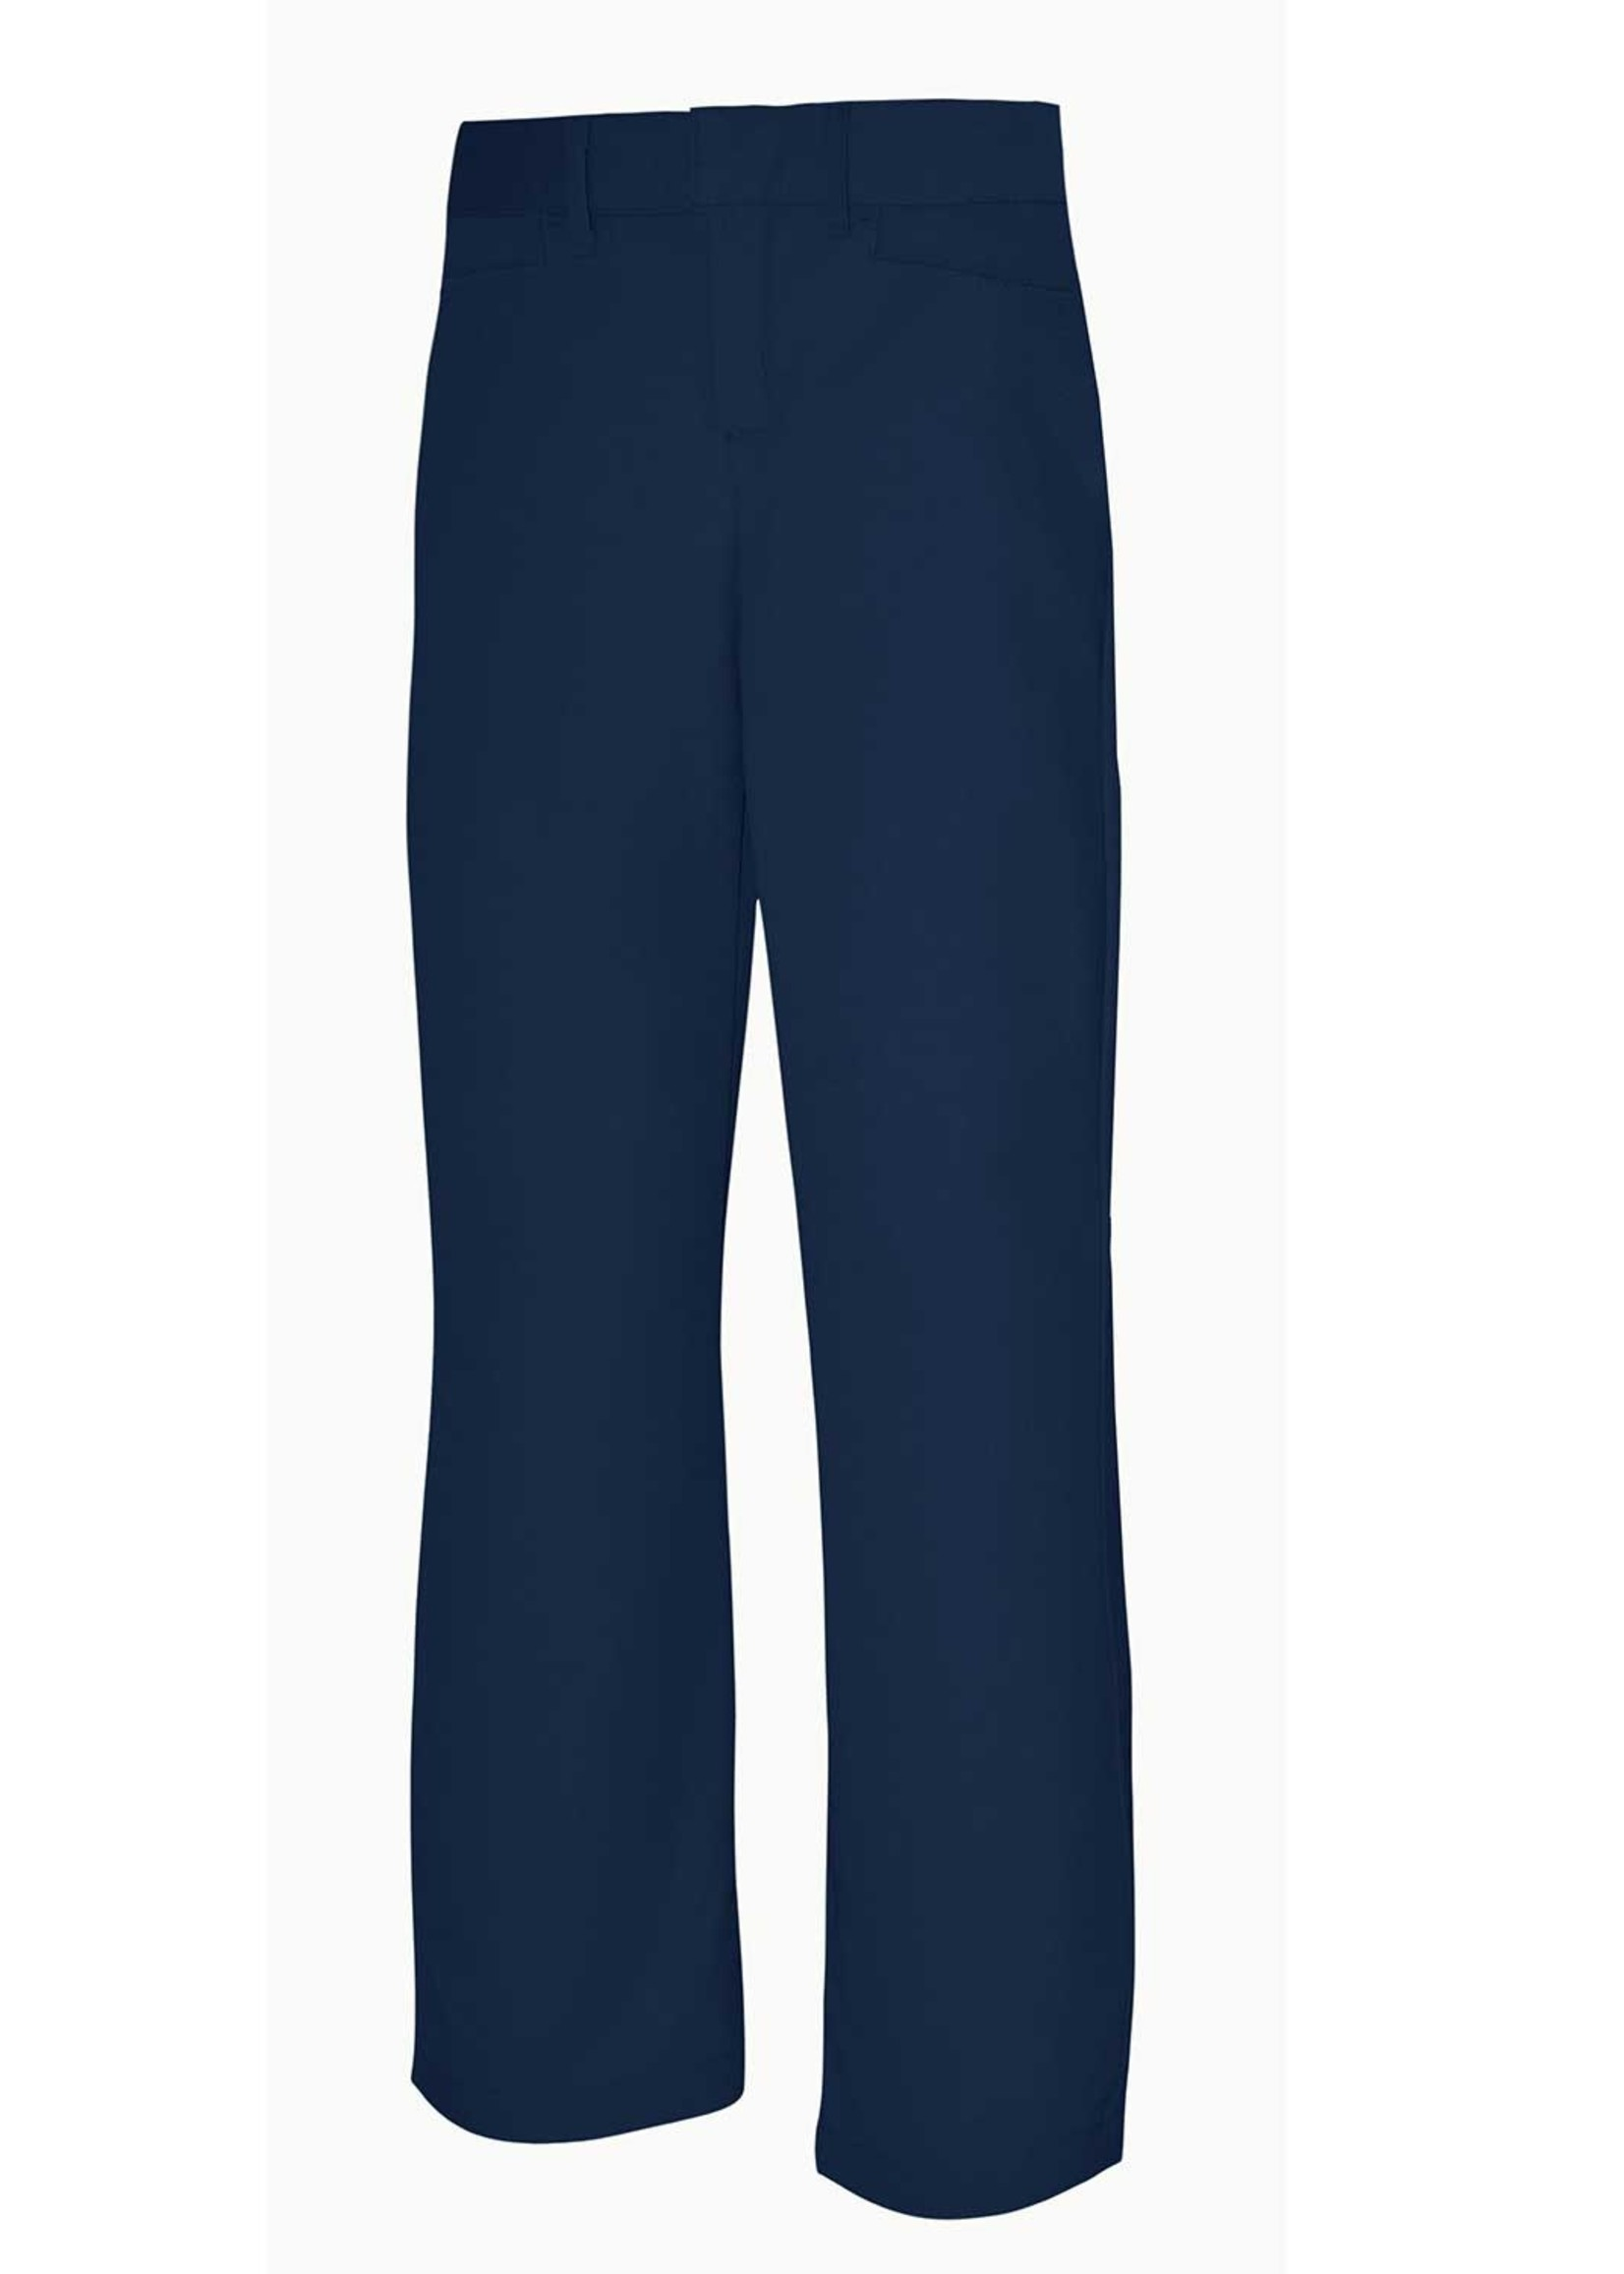 Girls Navy Mid Rise Flat Front Pant with logo